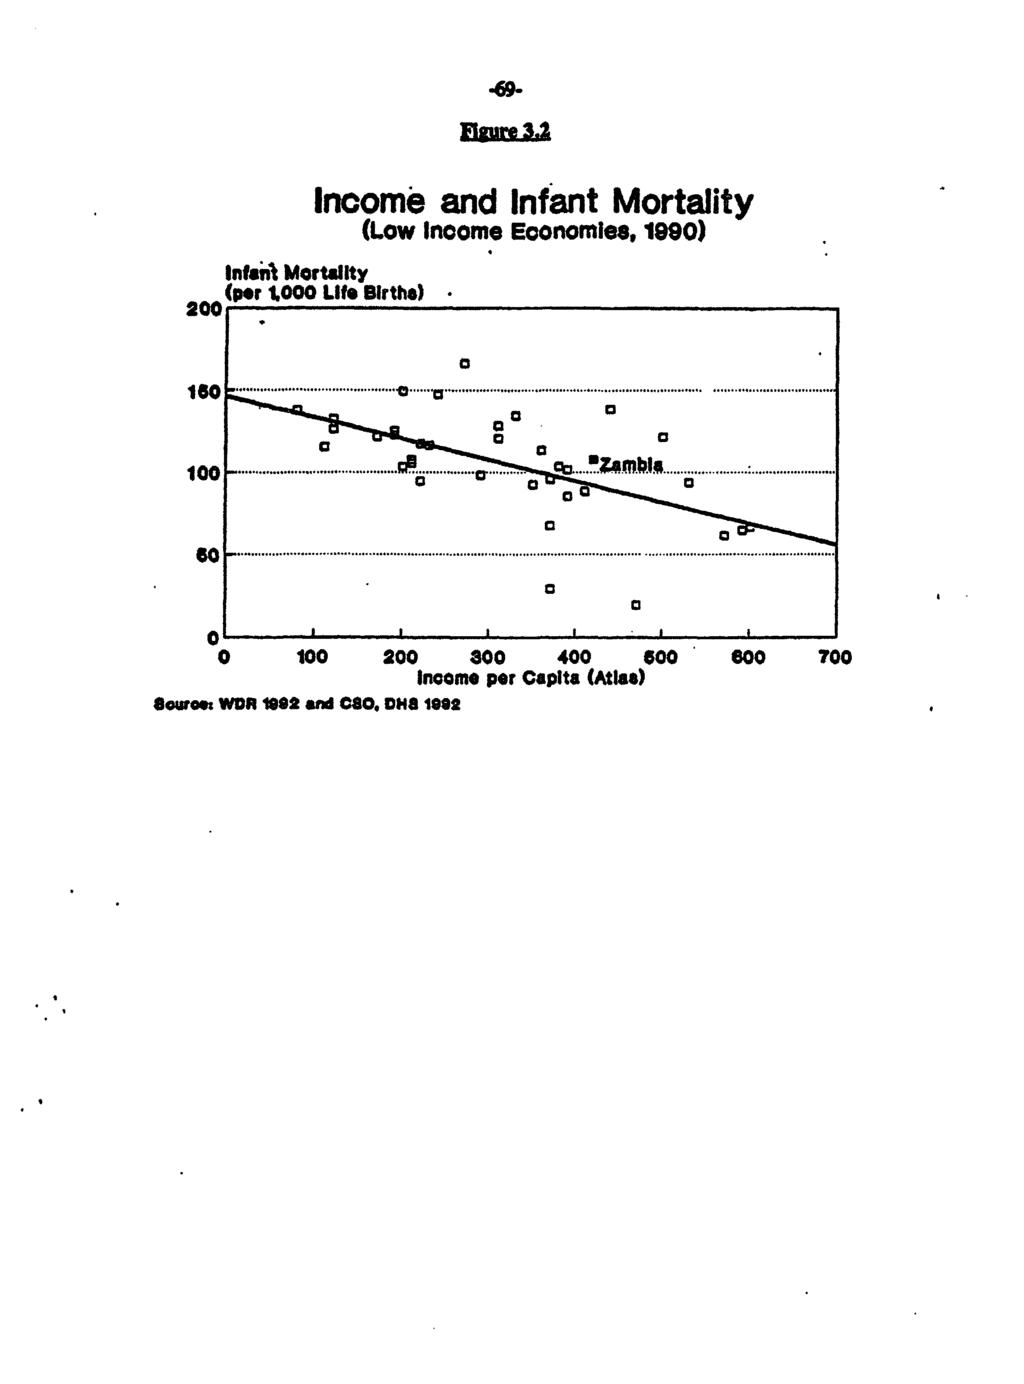 "InMOiM Mortality 200(per 1,000 Life Births) Income and Infant Mortality (Low Inoome Economies, 190) IS_ C 'l... "" Il""4@ '''""' llill X...a... - -* 0 ----------------."